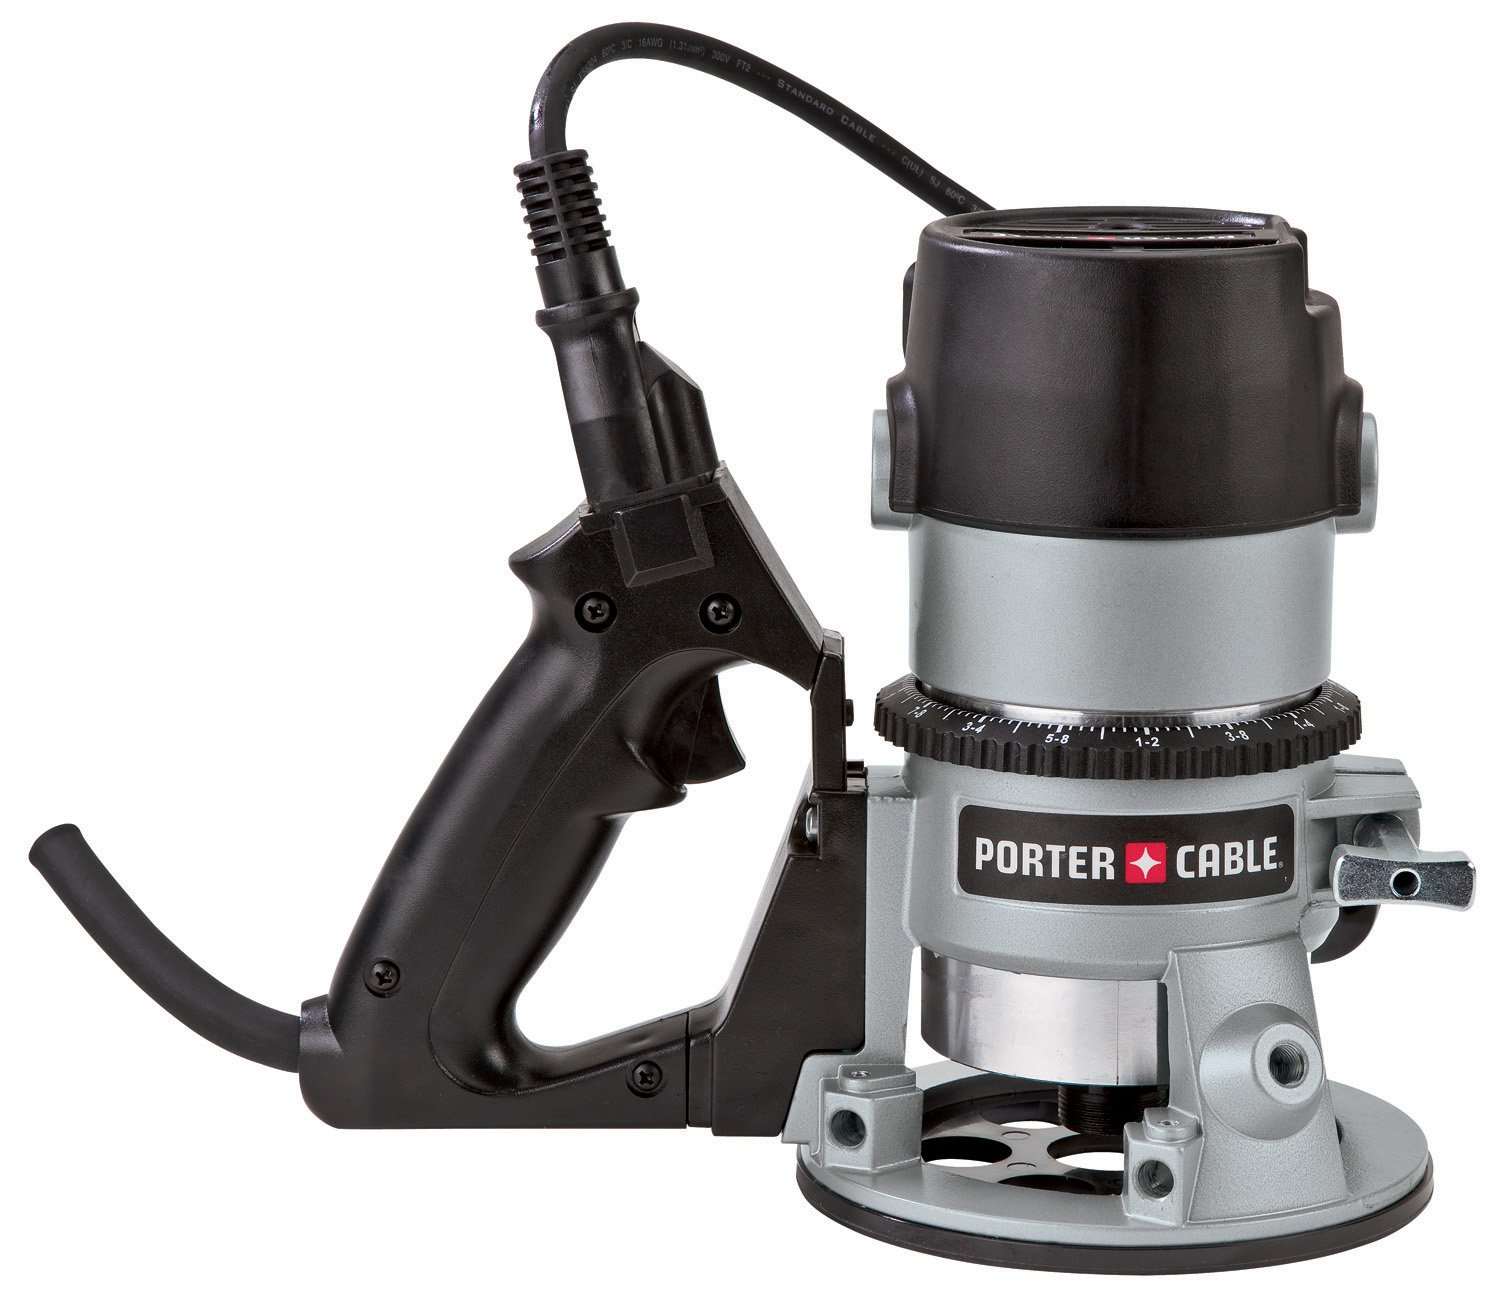 PORTER-CABLE 691 11 Amp 1-3/4-Horsepower D-Handle Router with 1/4-Inch and 1/2-Inch Collets